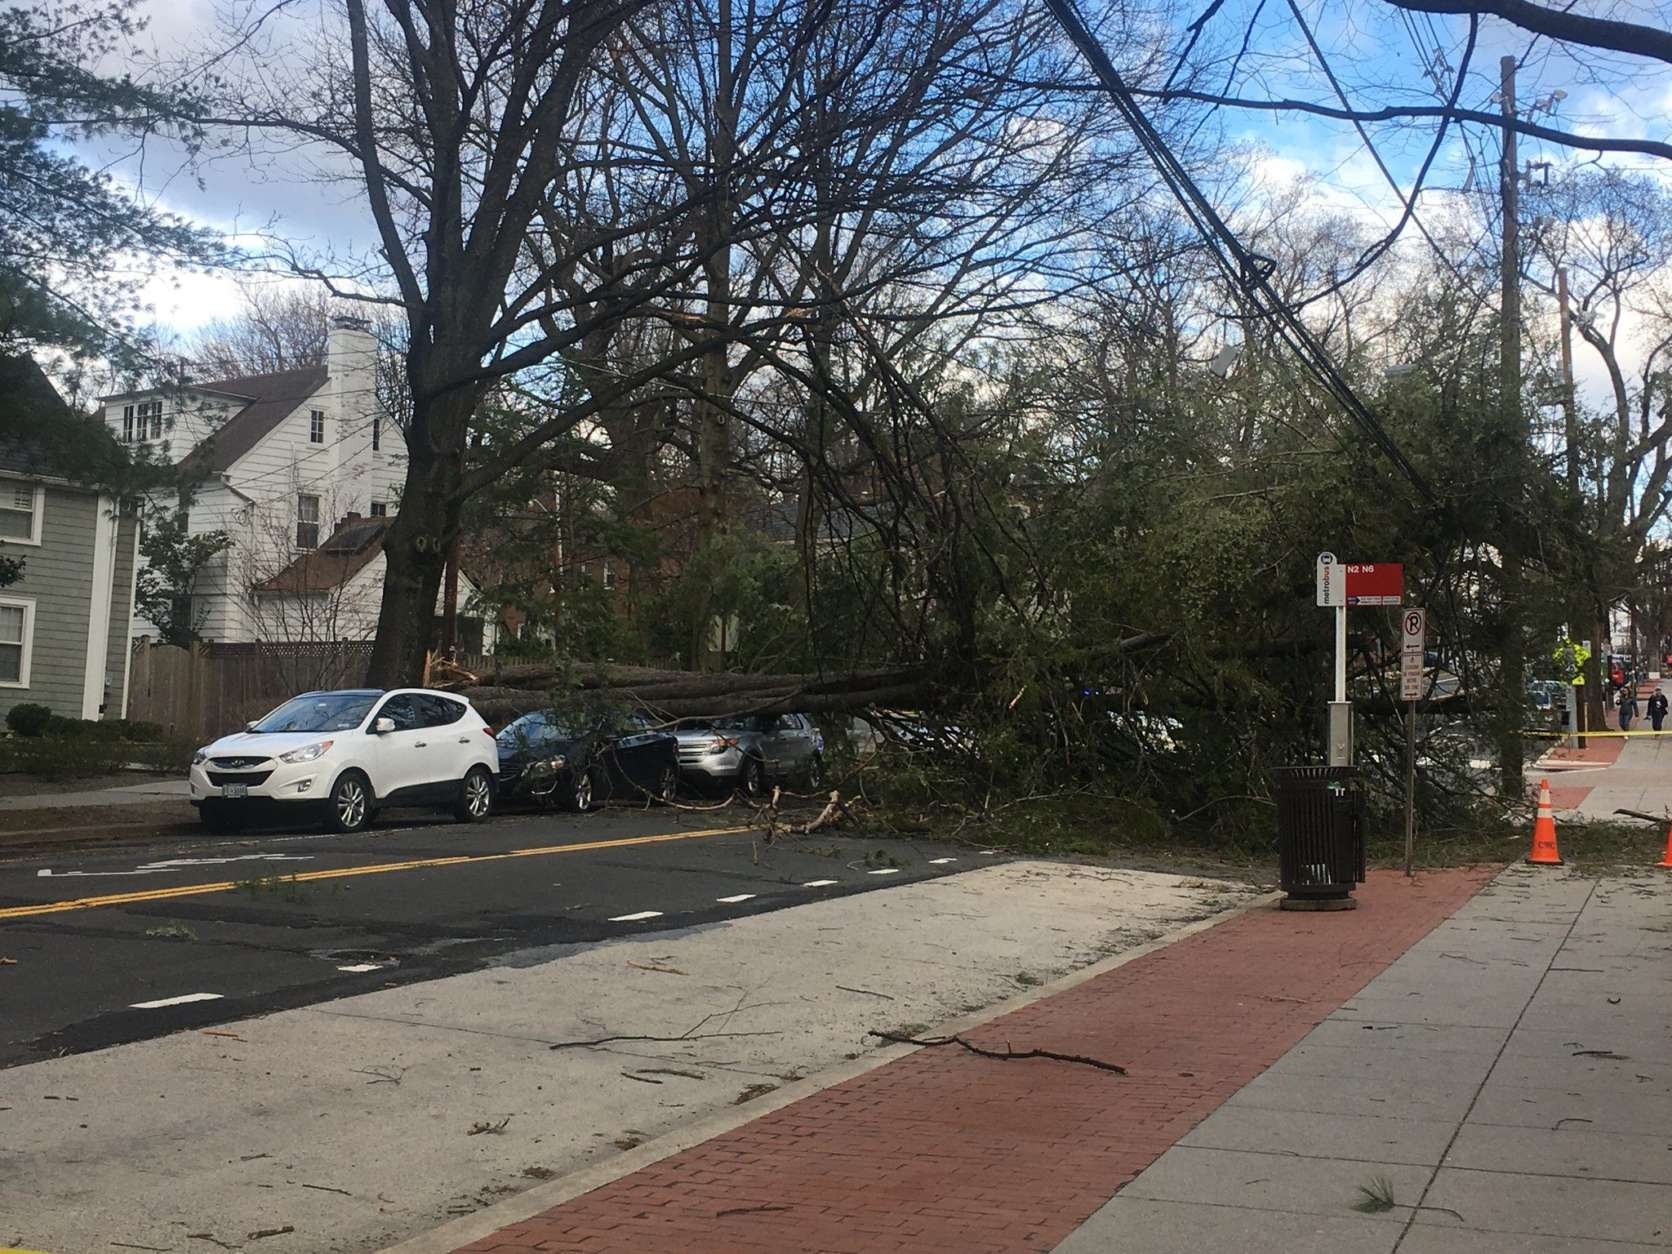 A tree landed on parked cars in the 3100 block of New Mexico Avenue in D.C. Friday. (Courtesy @dougfun via Twitter)